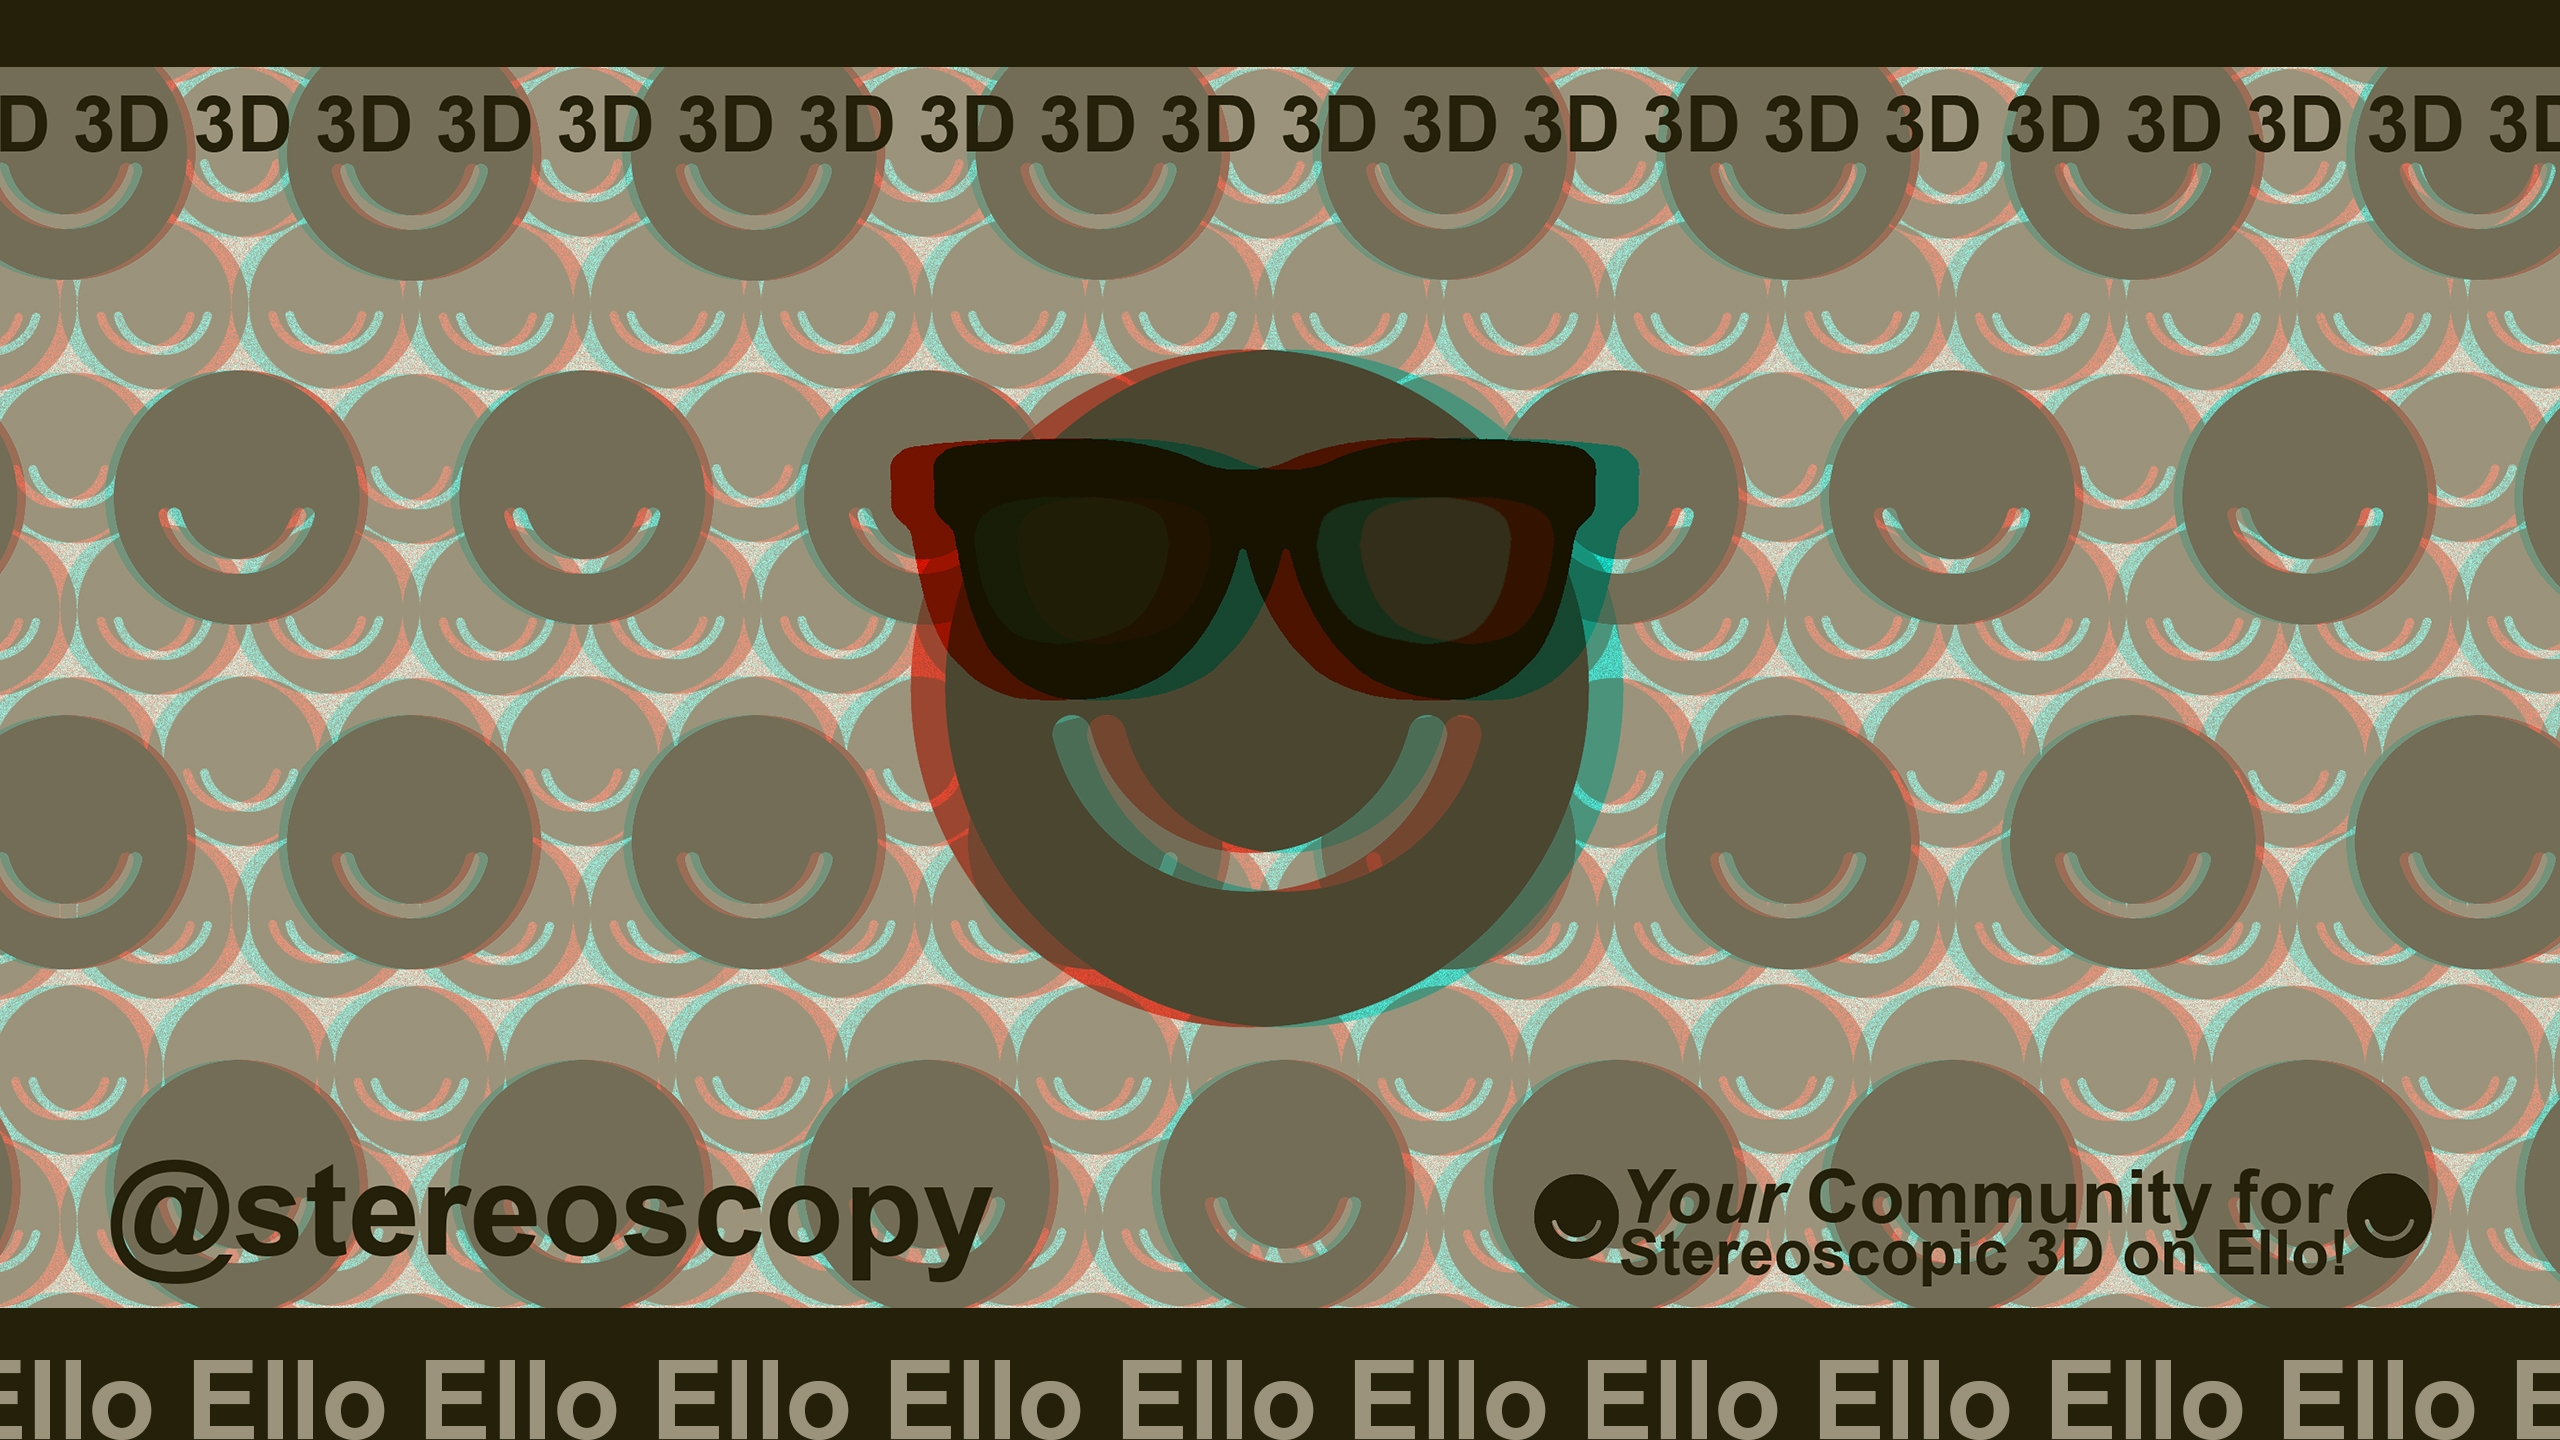 Your Community for Stereoscopic 3D Media (@stereoscopy) Cover Image